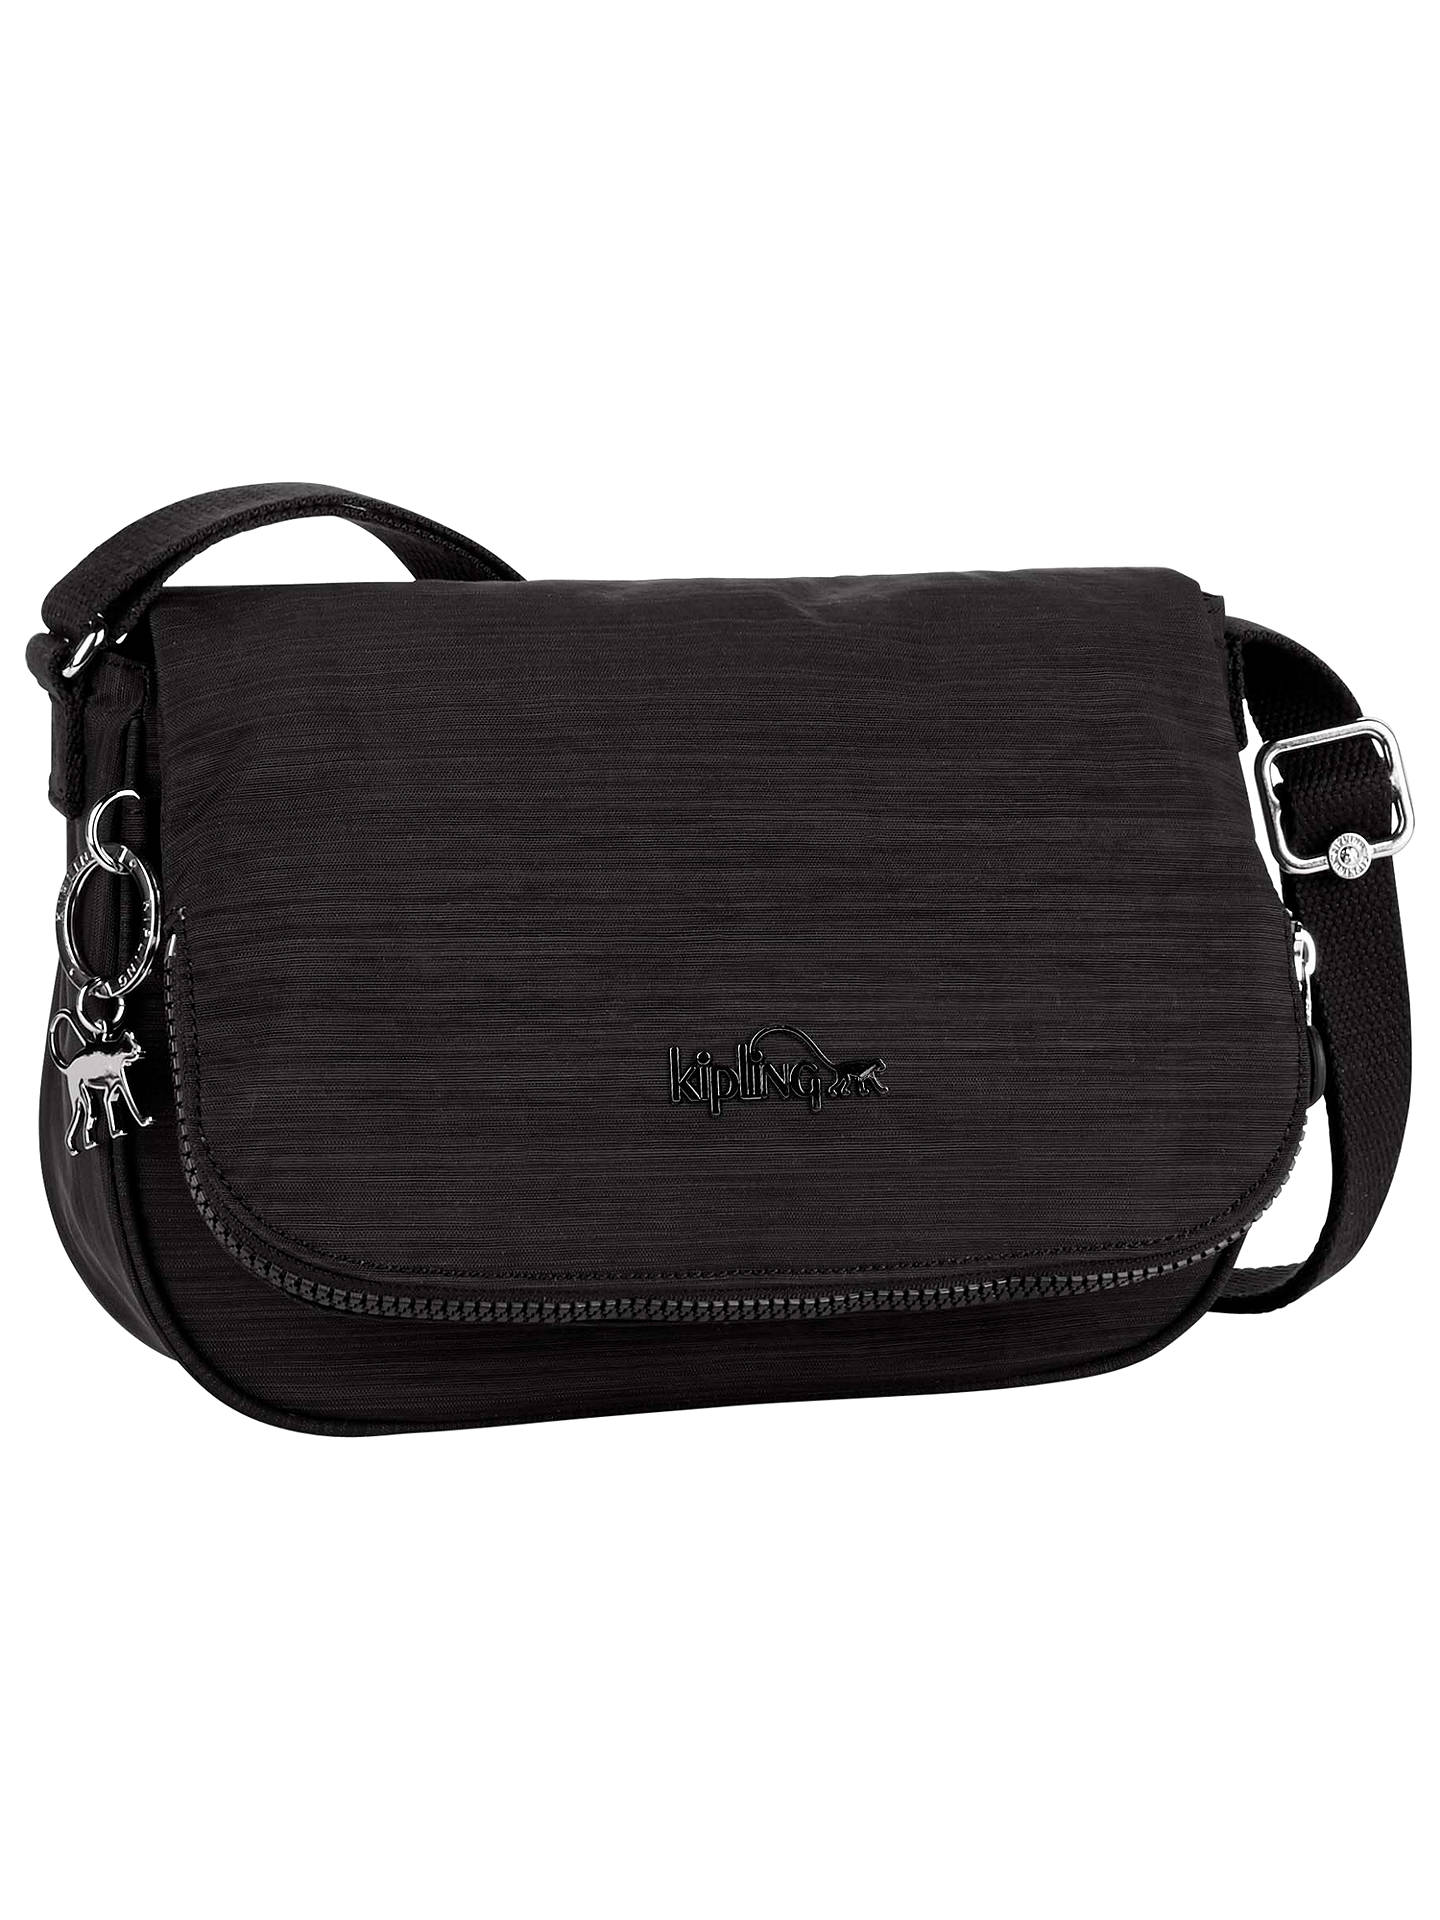 55f026d9acb Buy Kipling Earthbeat S Small Shoulder Bag, Dazz Black Online at  johnlewis.com ...